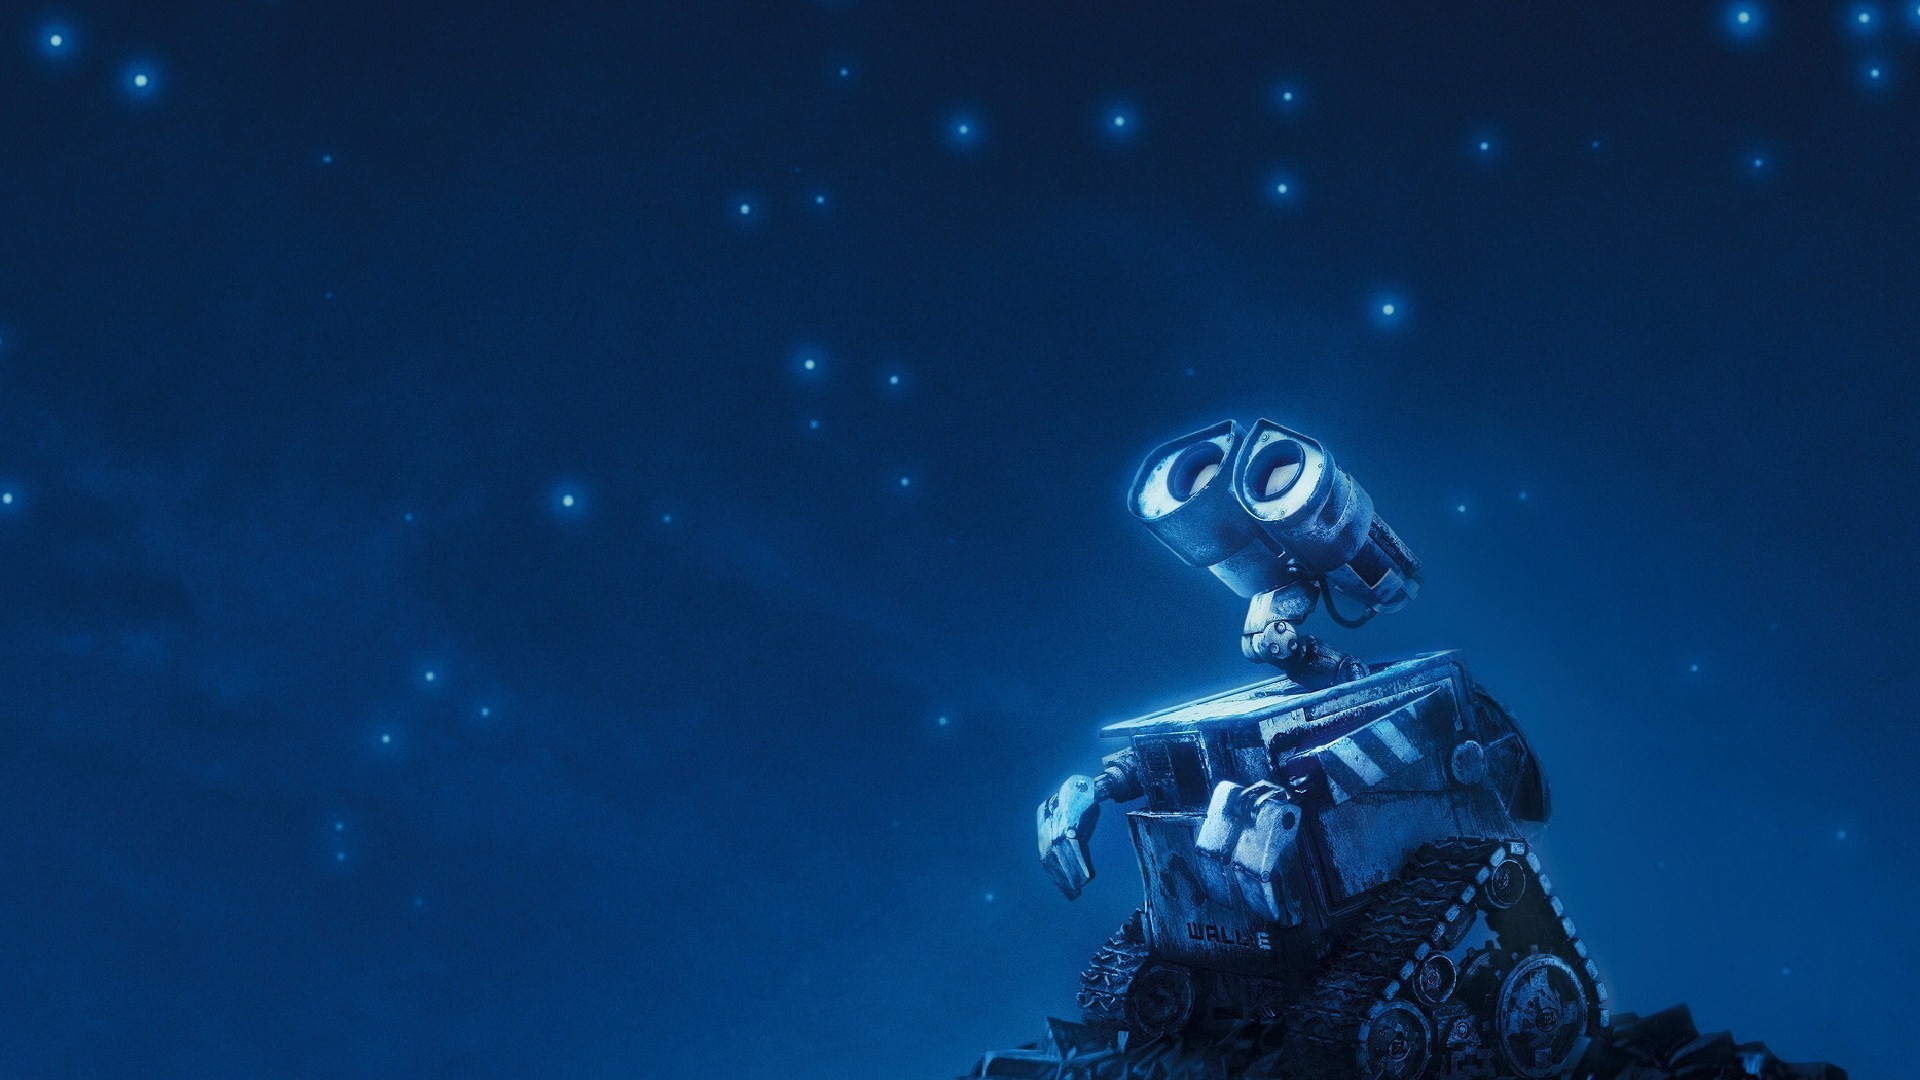 elements of pastiche in wall e a Chapter iii analysis an example of postmodernism application in film is wall-e it is an animation movie released in 2008 by pixar animation studios.